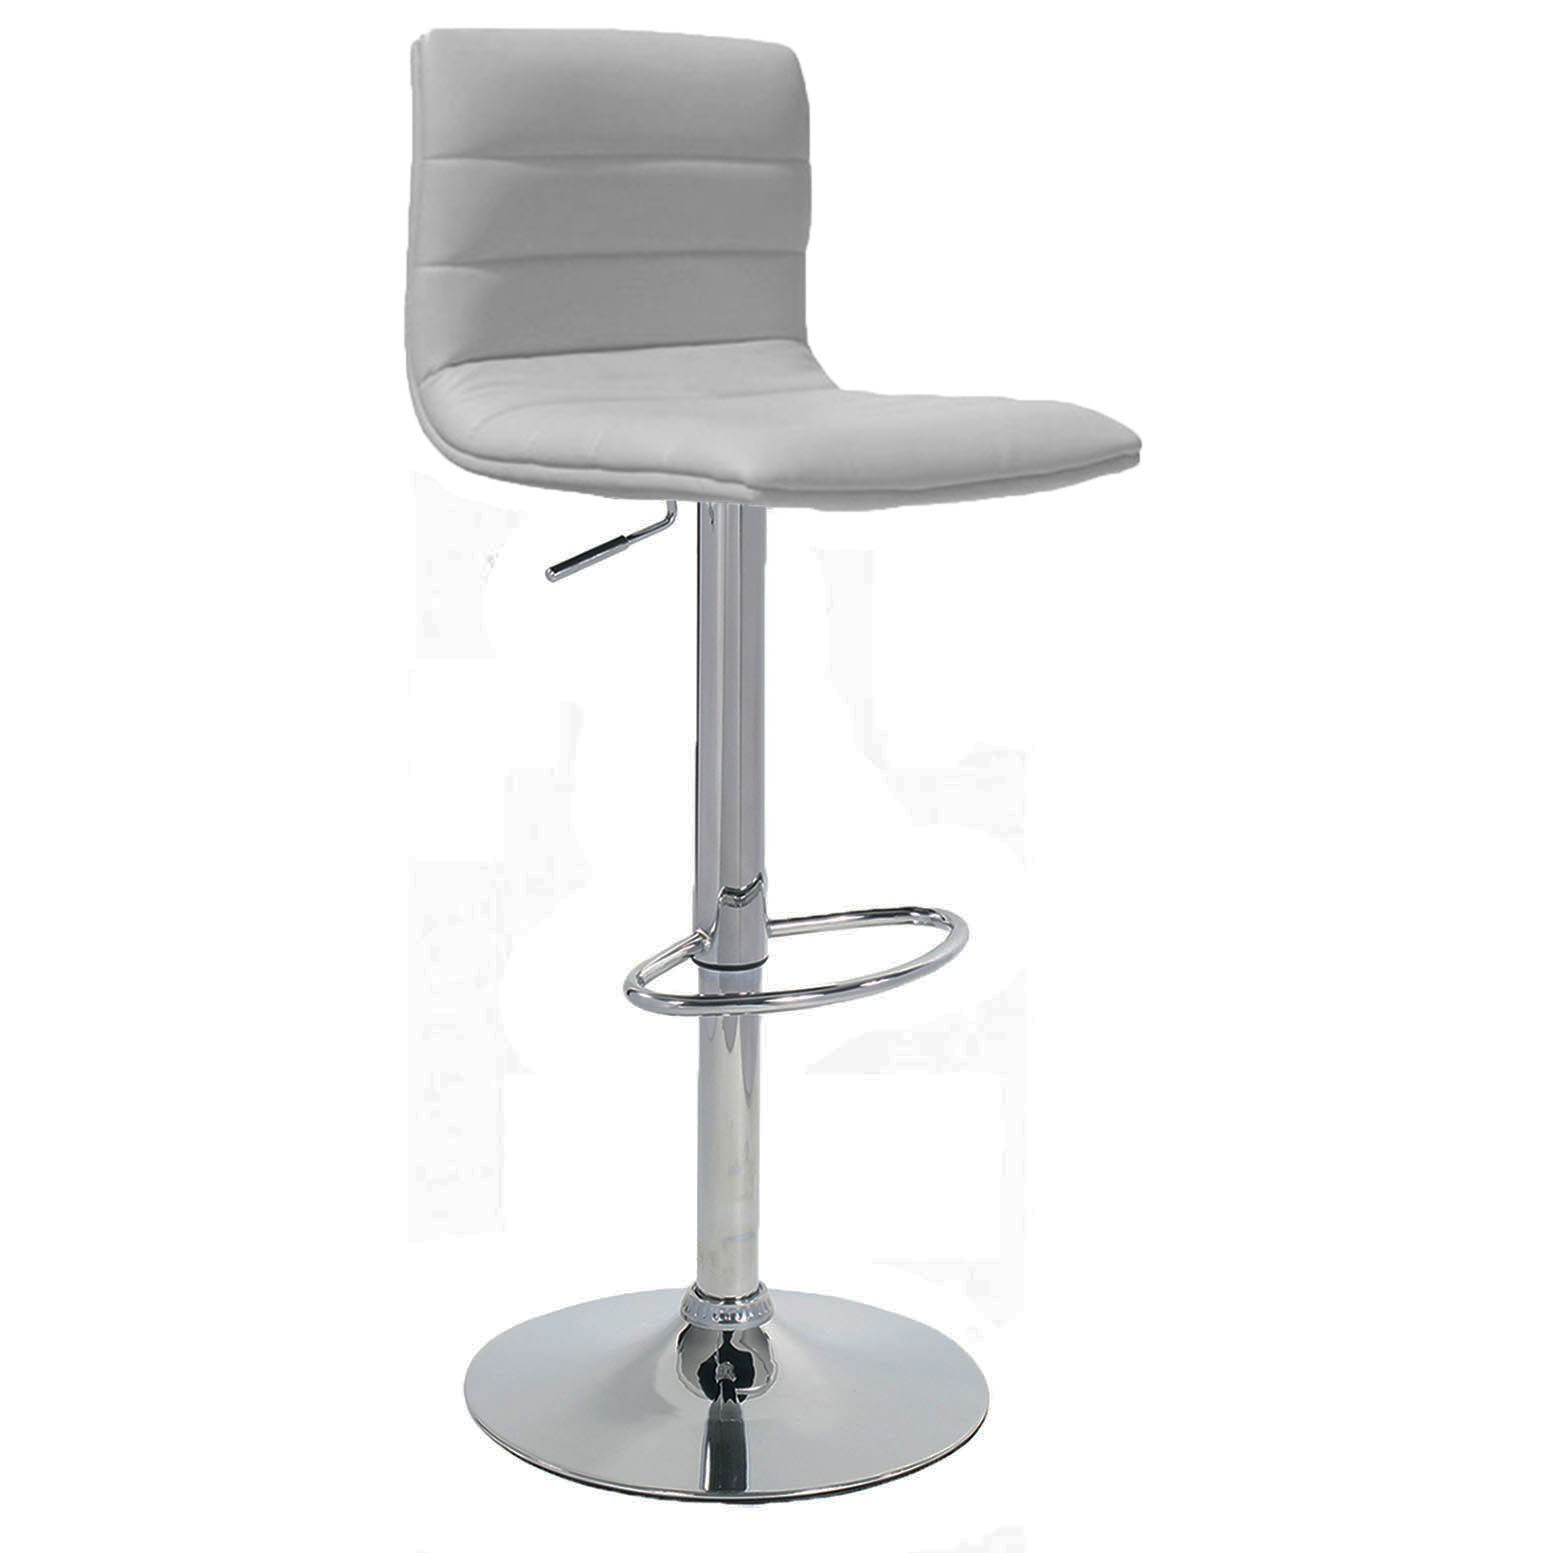 Aldo Bar Stool - White Product Image